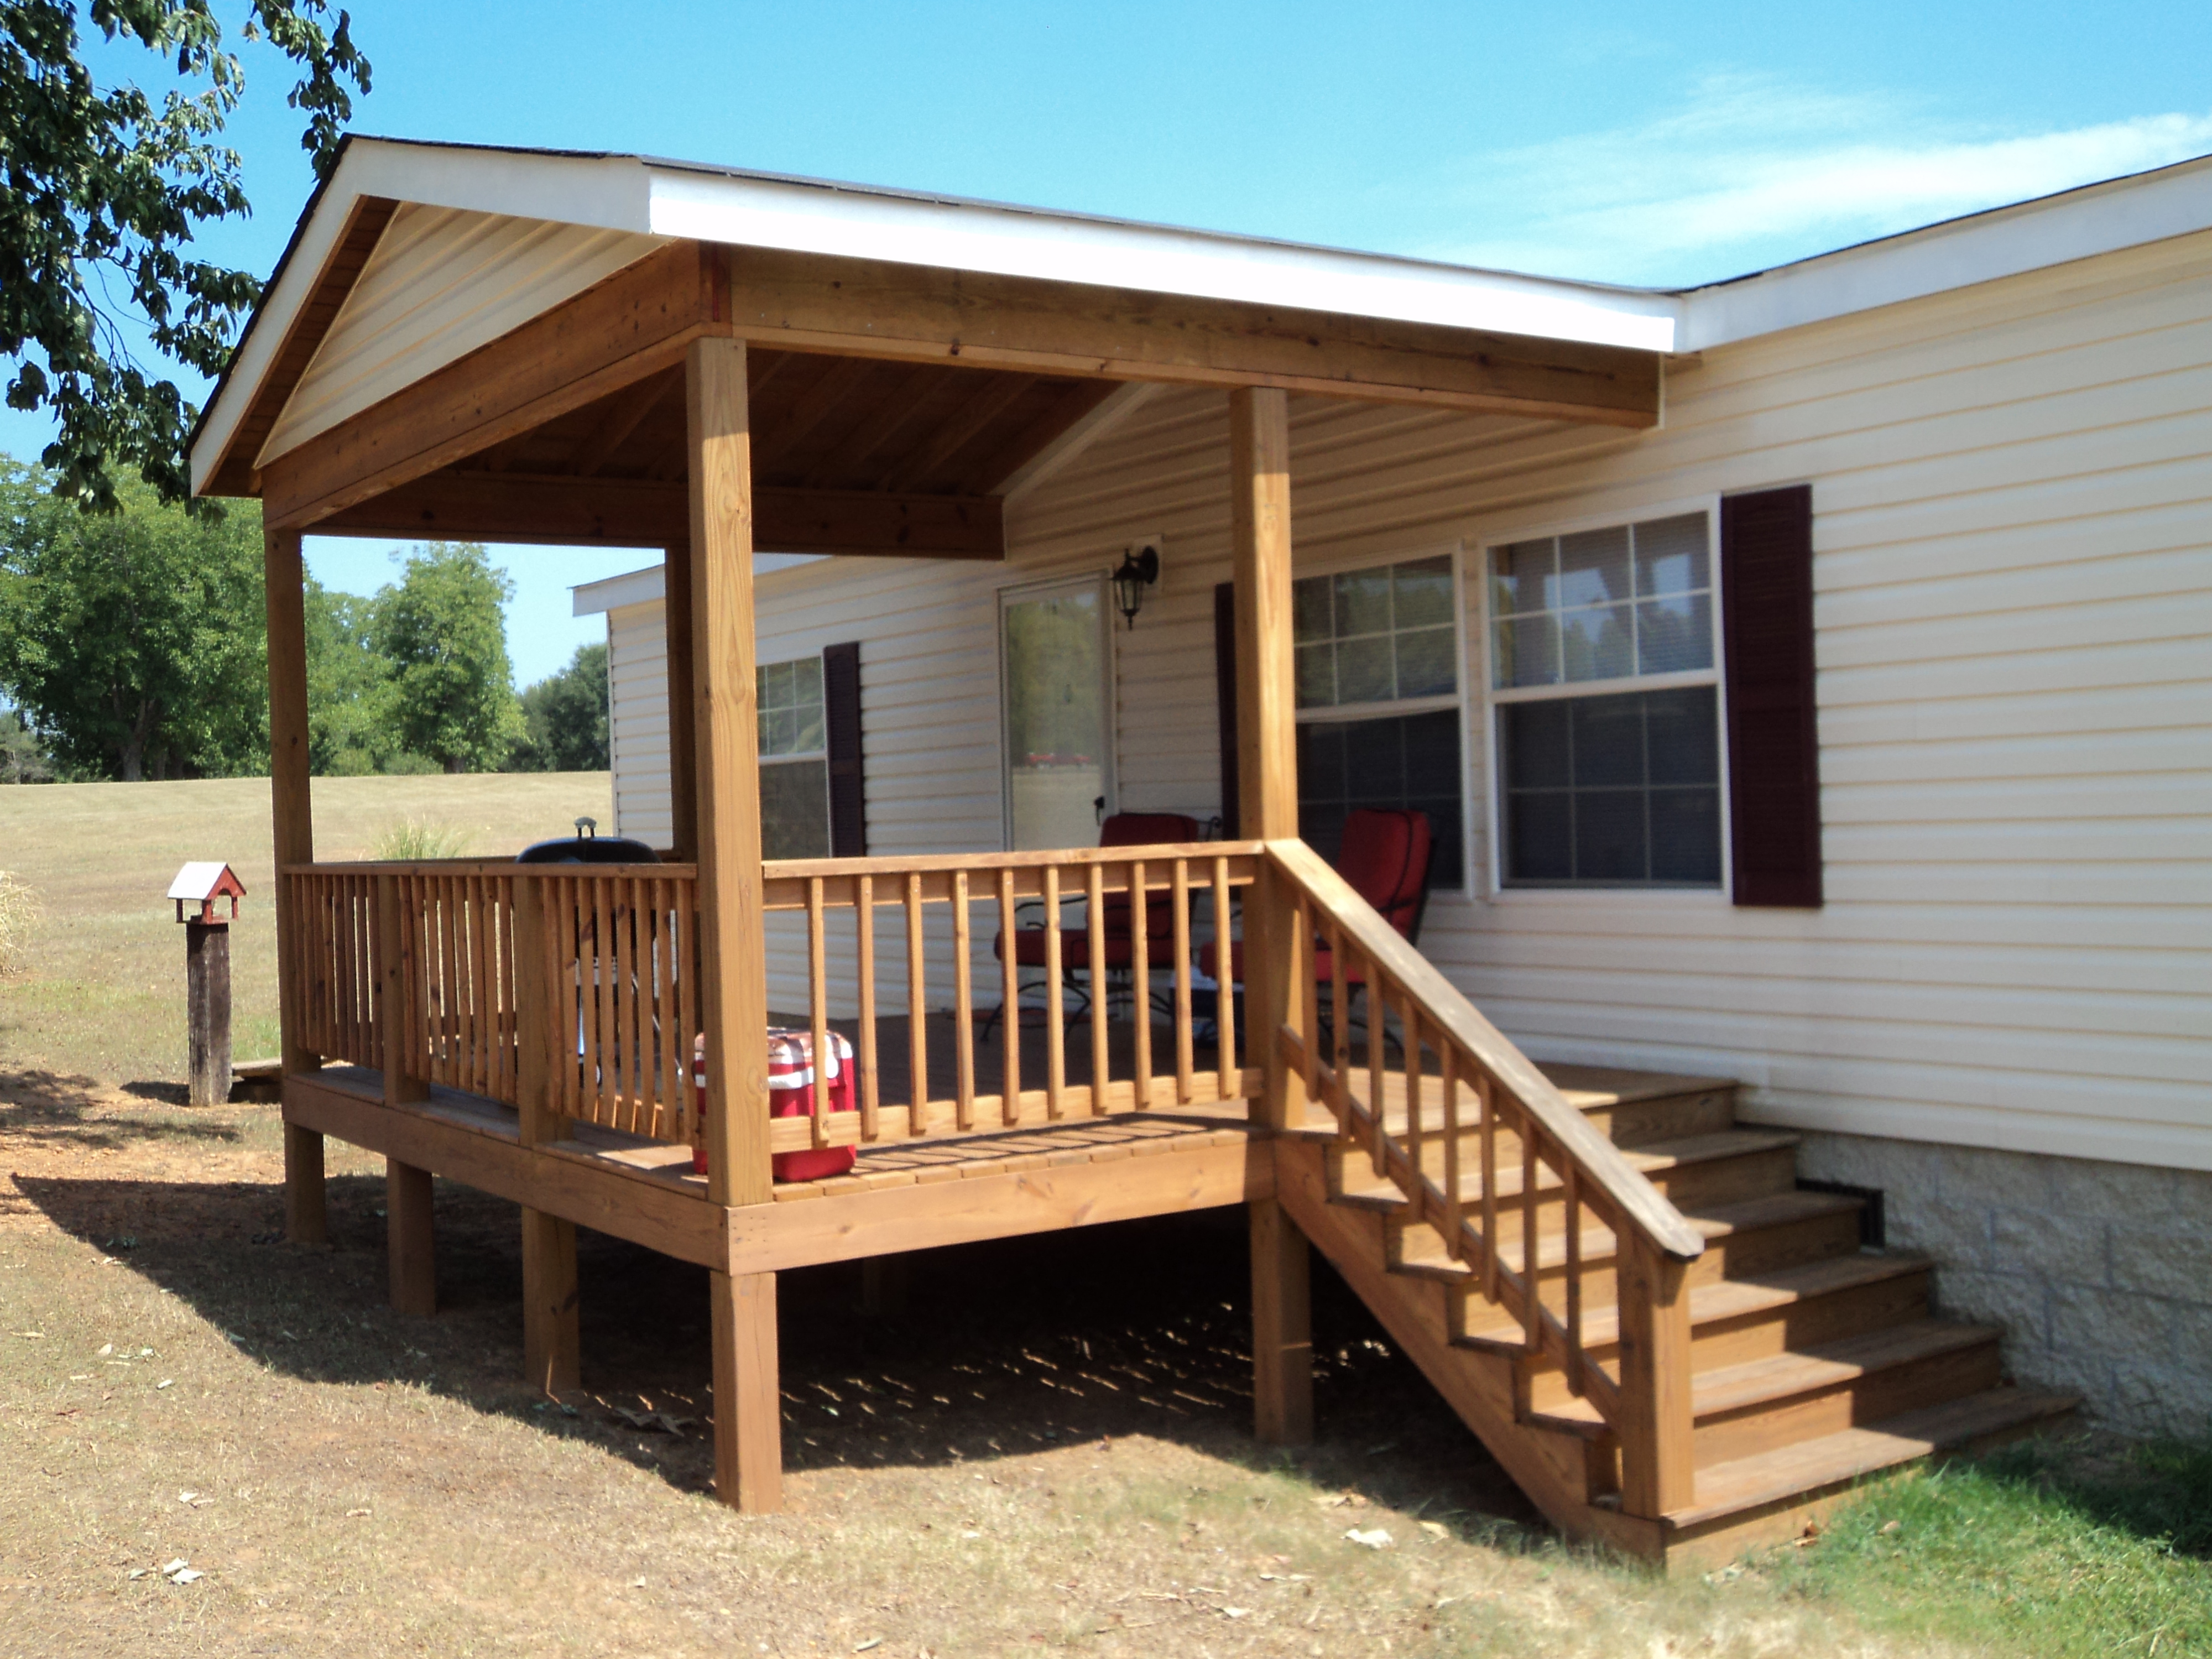 Deck with a vaulted roof | Milledgeville Home Maintenance on Deck Over Patio Ideas id=30910